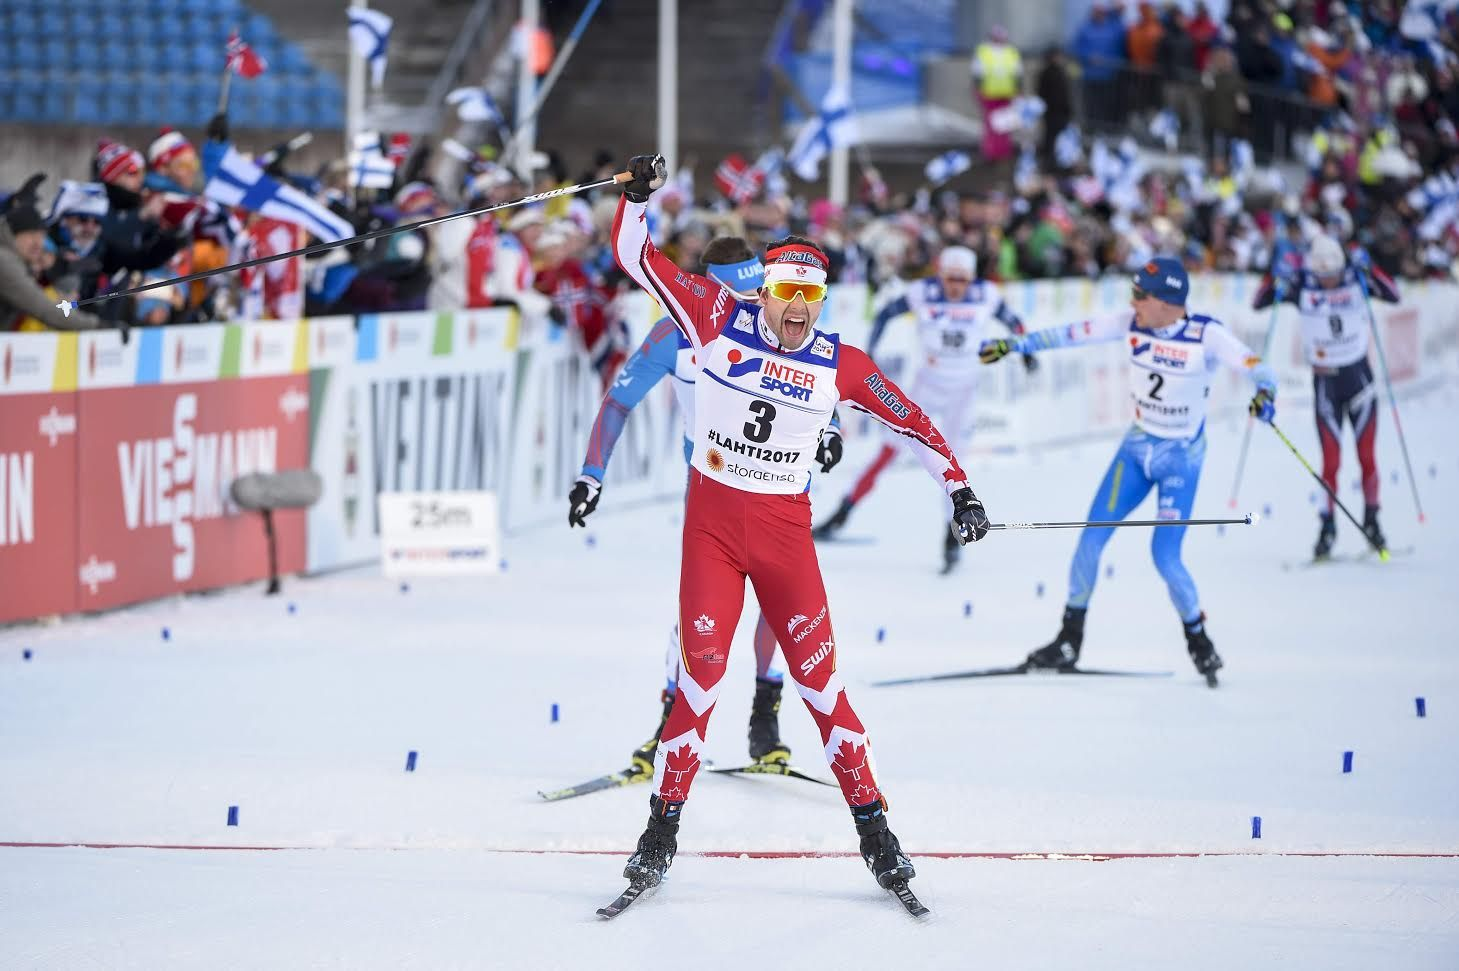 Canada's Alex Harvey Crowned World Champion in Cross